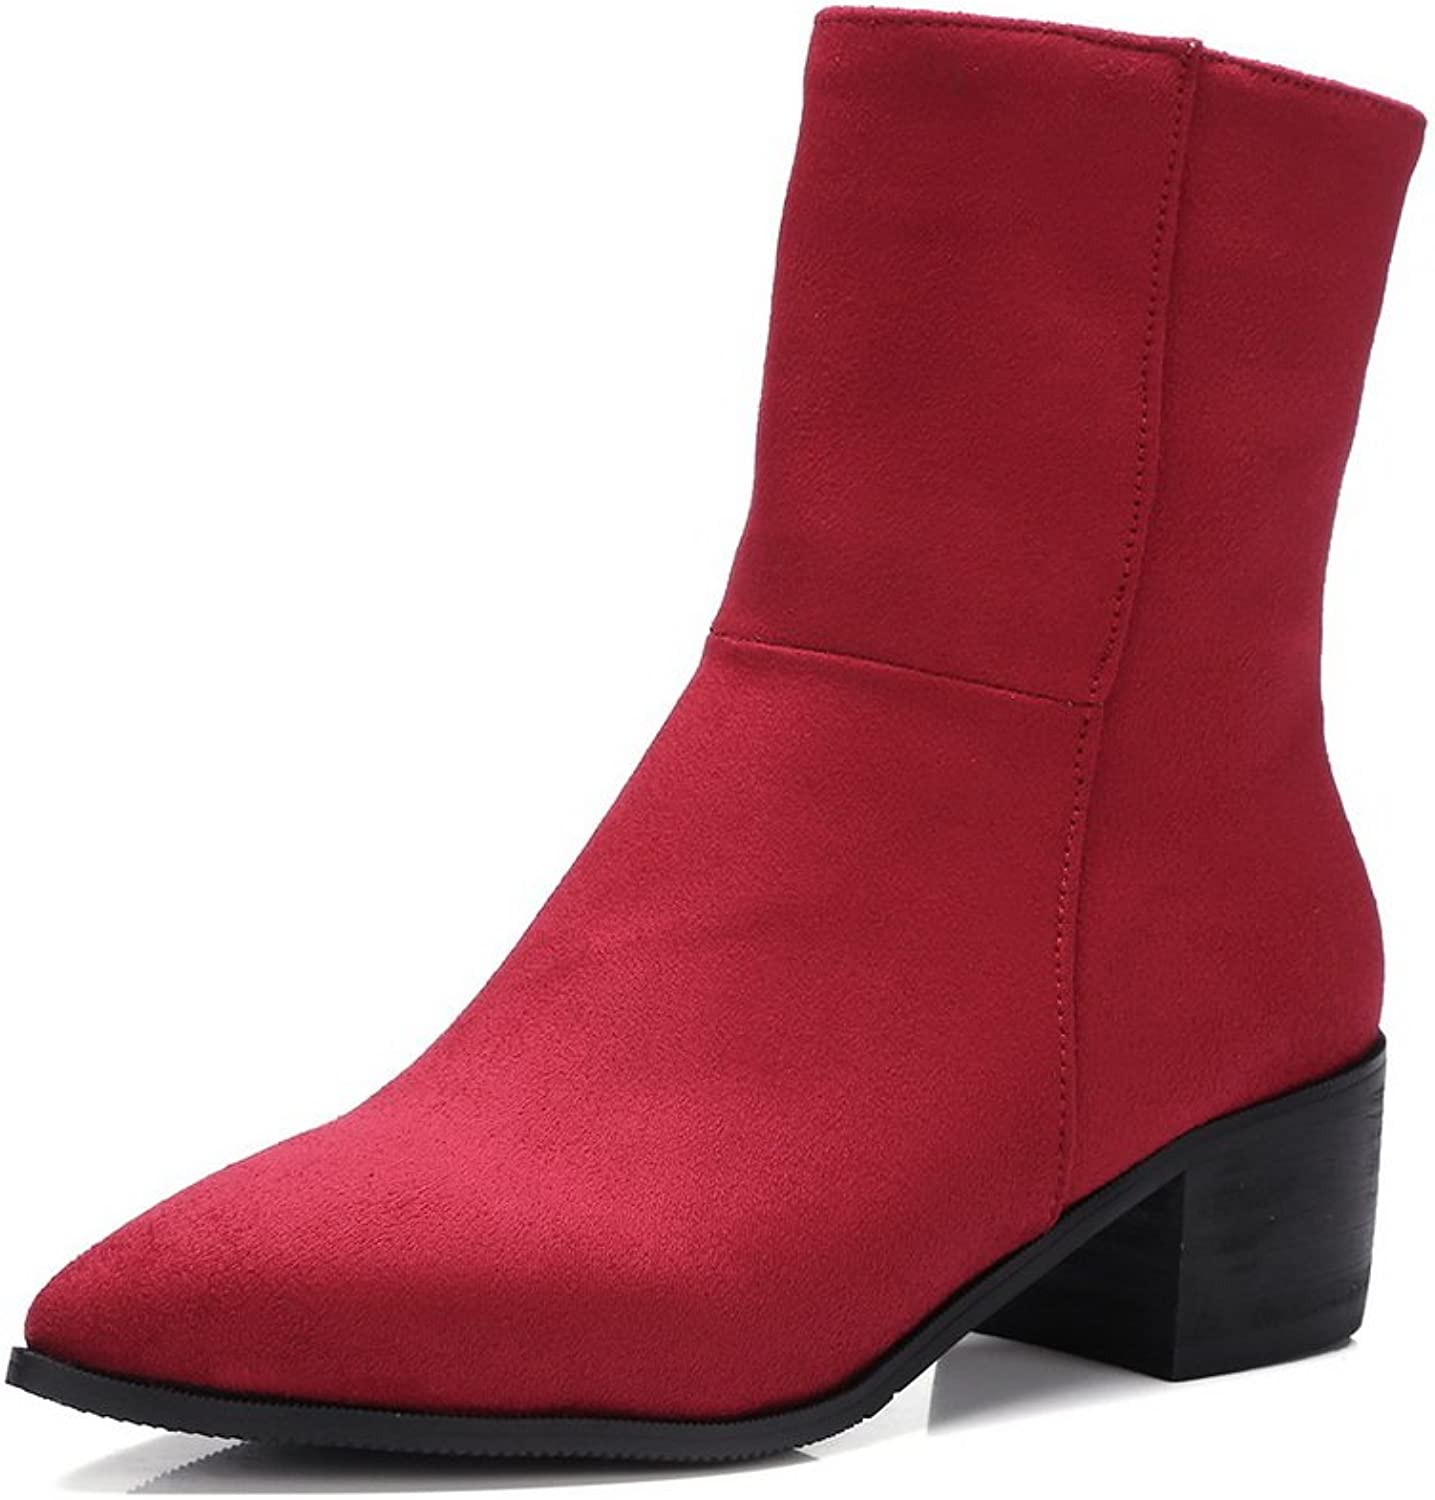 AdeeSu Ladies Fashion Riding Boots Pull-On Kitten-Heels Imitated Suede Boots